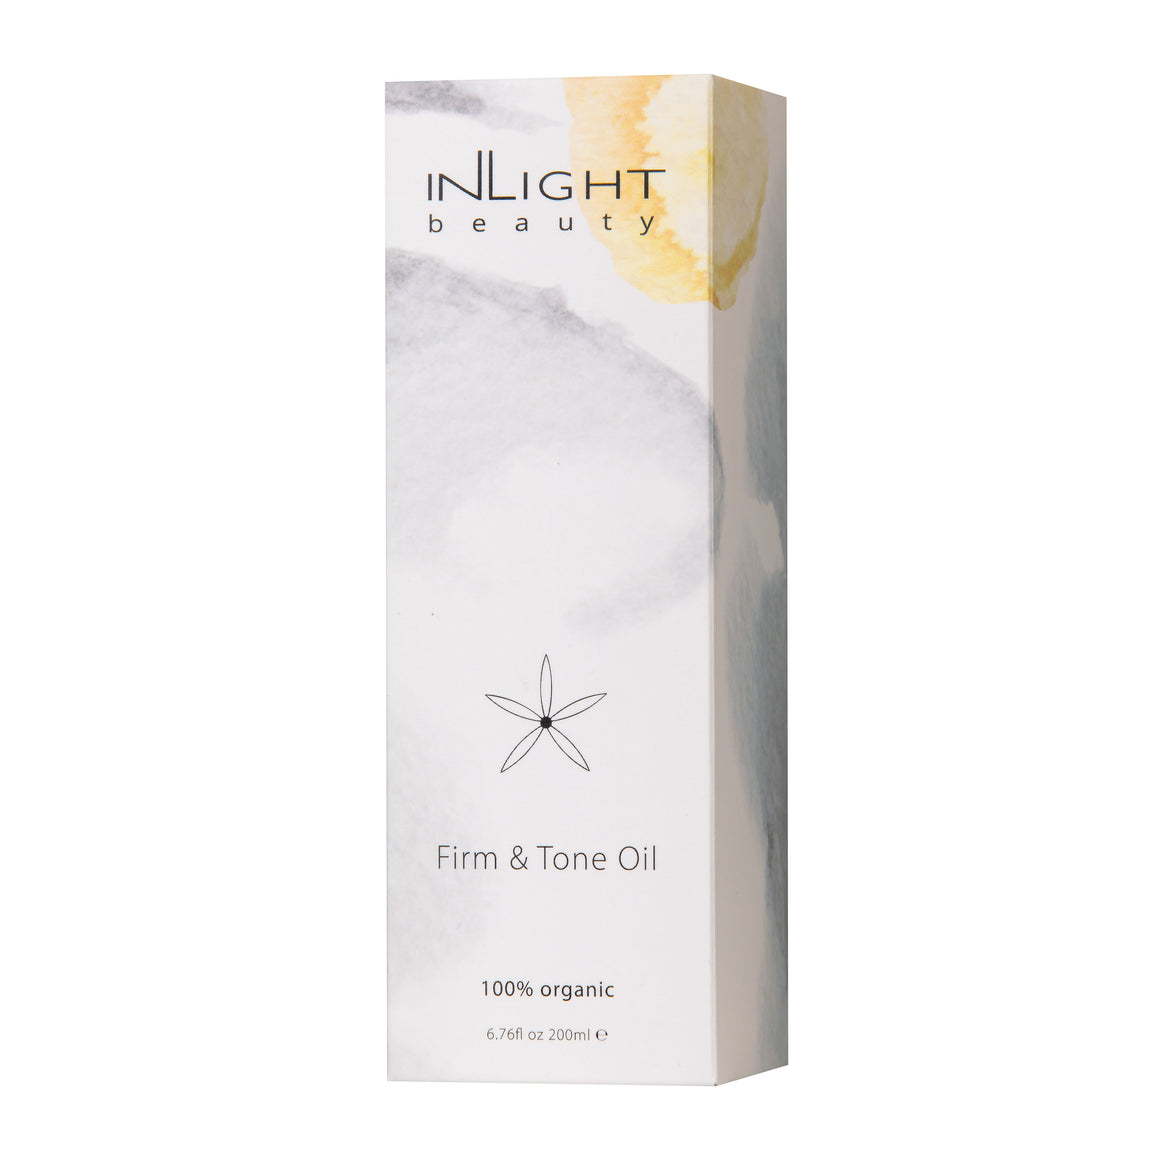 Firm & Tone Oil 200ml